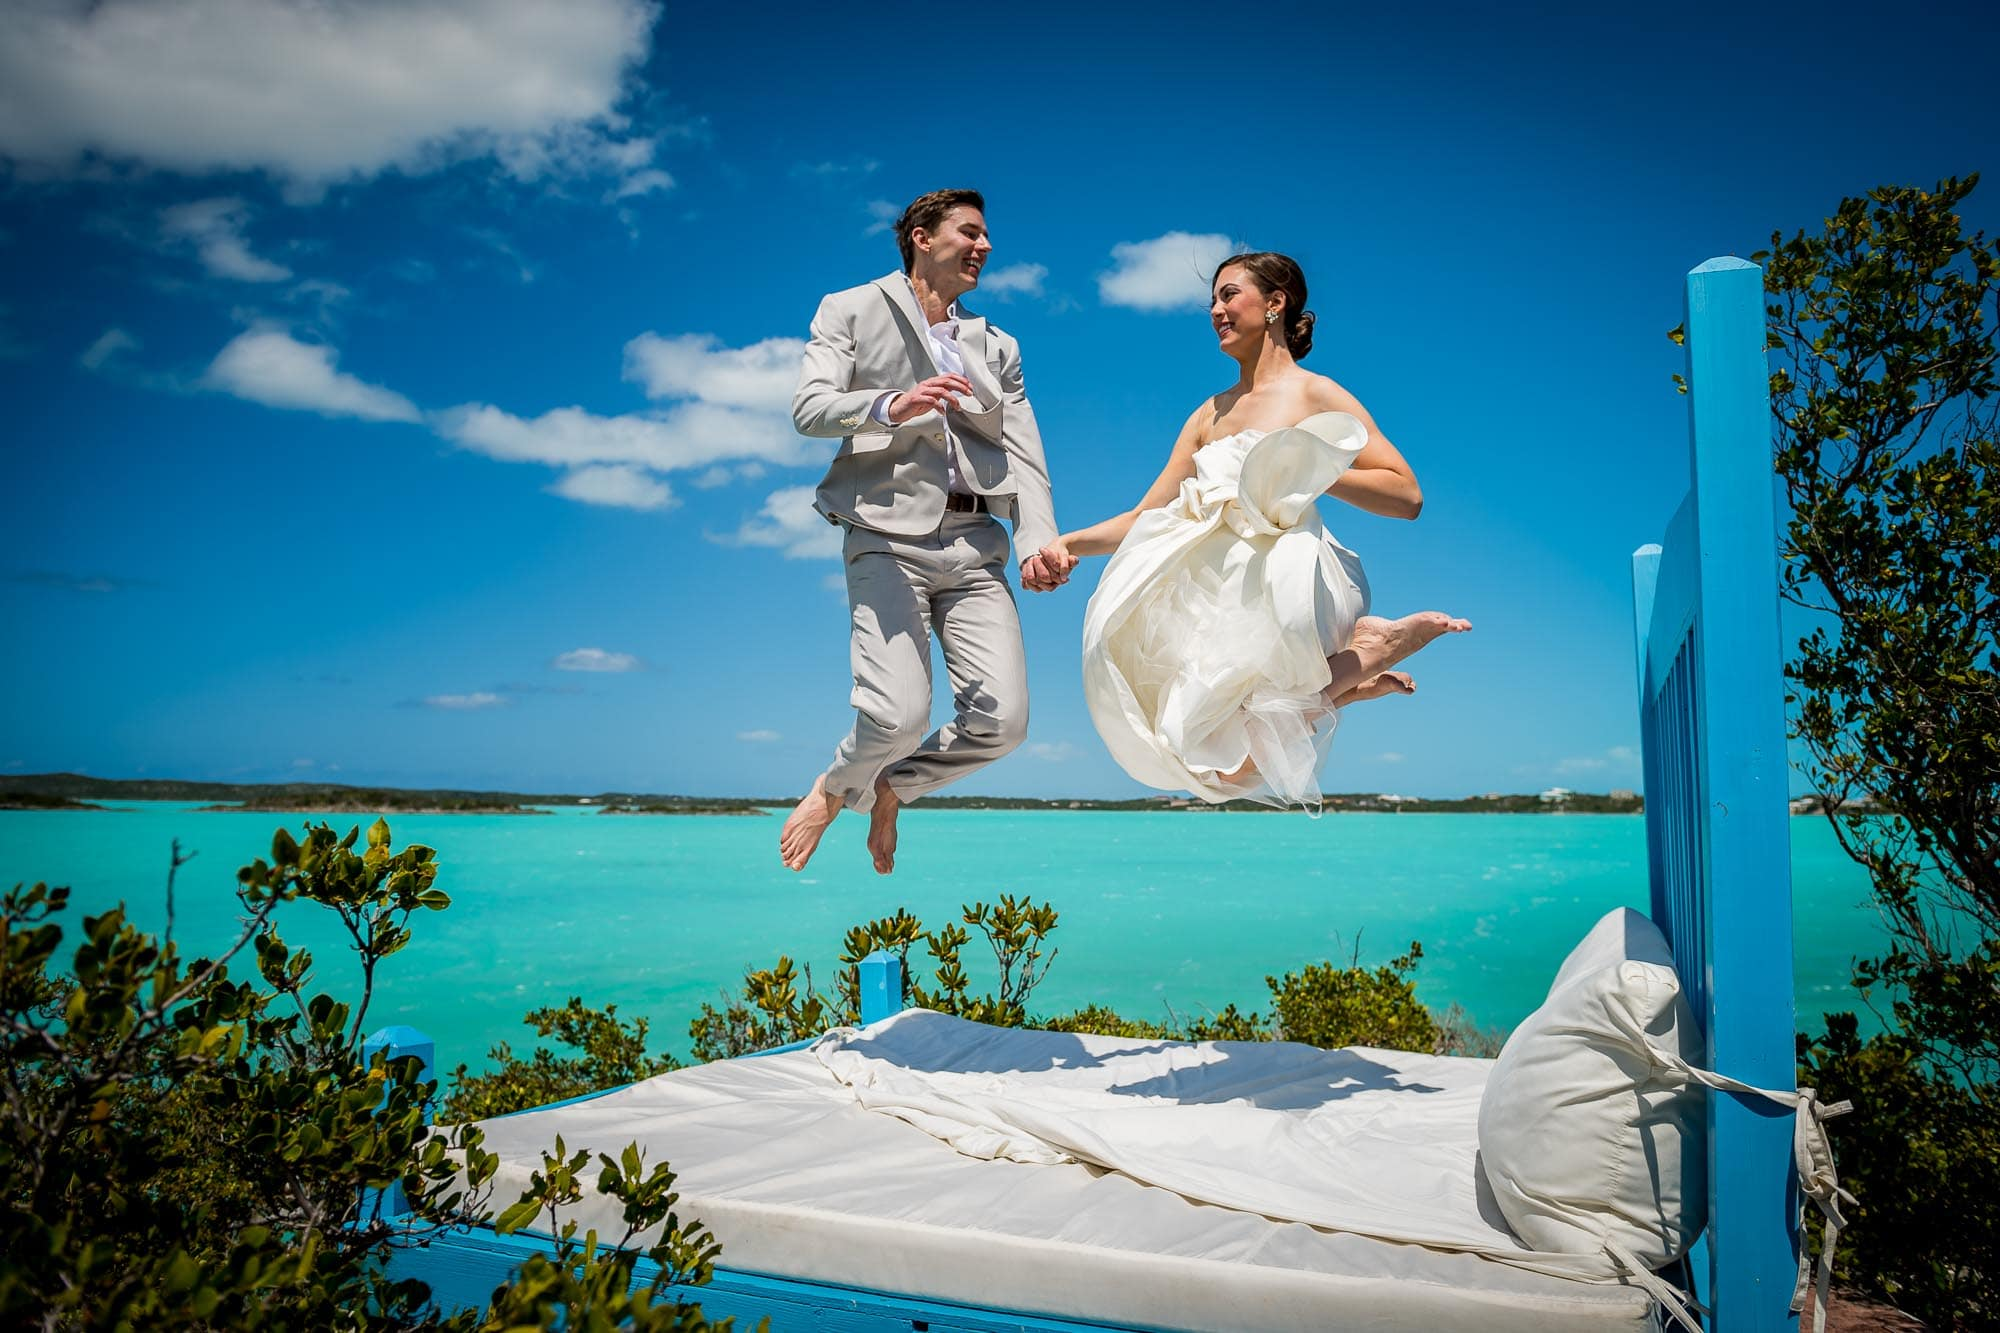 Newlyweds jumping on a bed outside during their destination wedding on Turks & Caicos